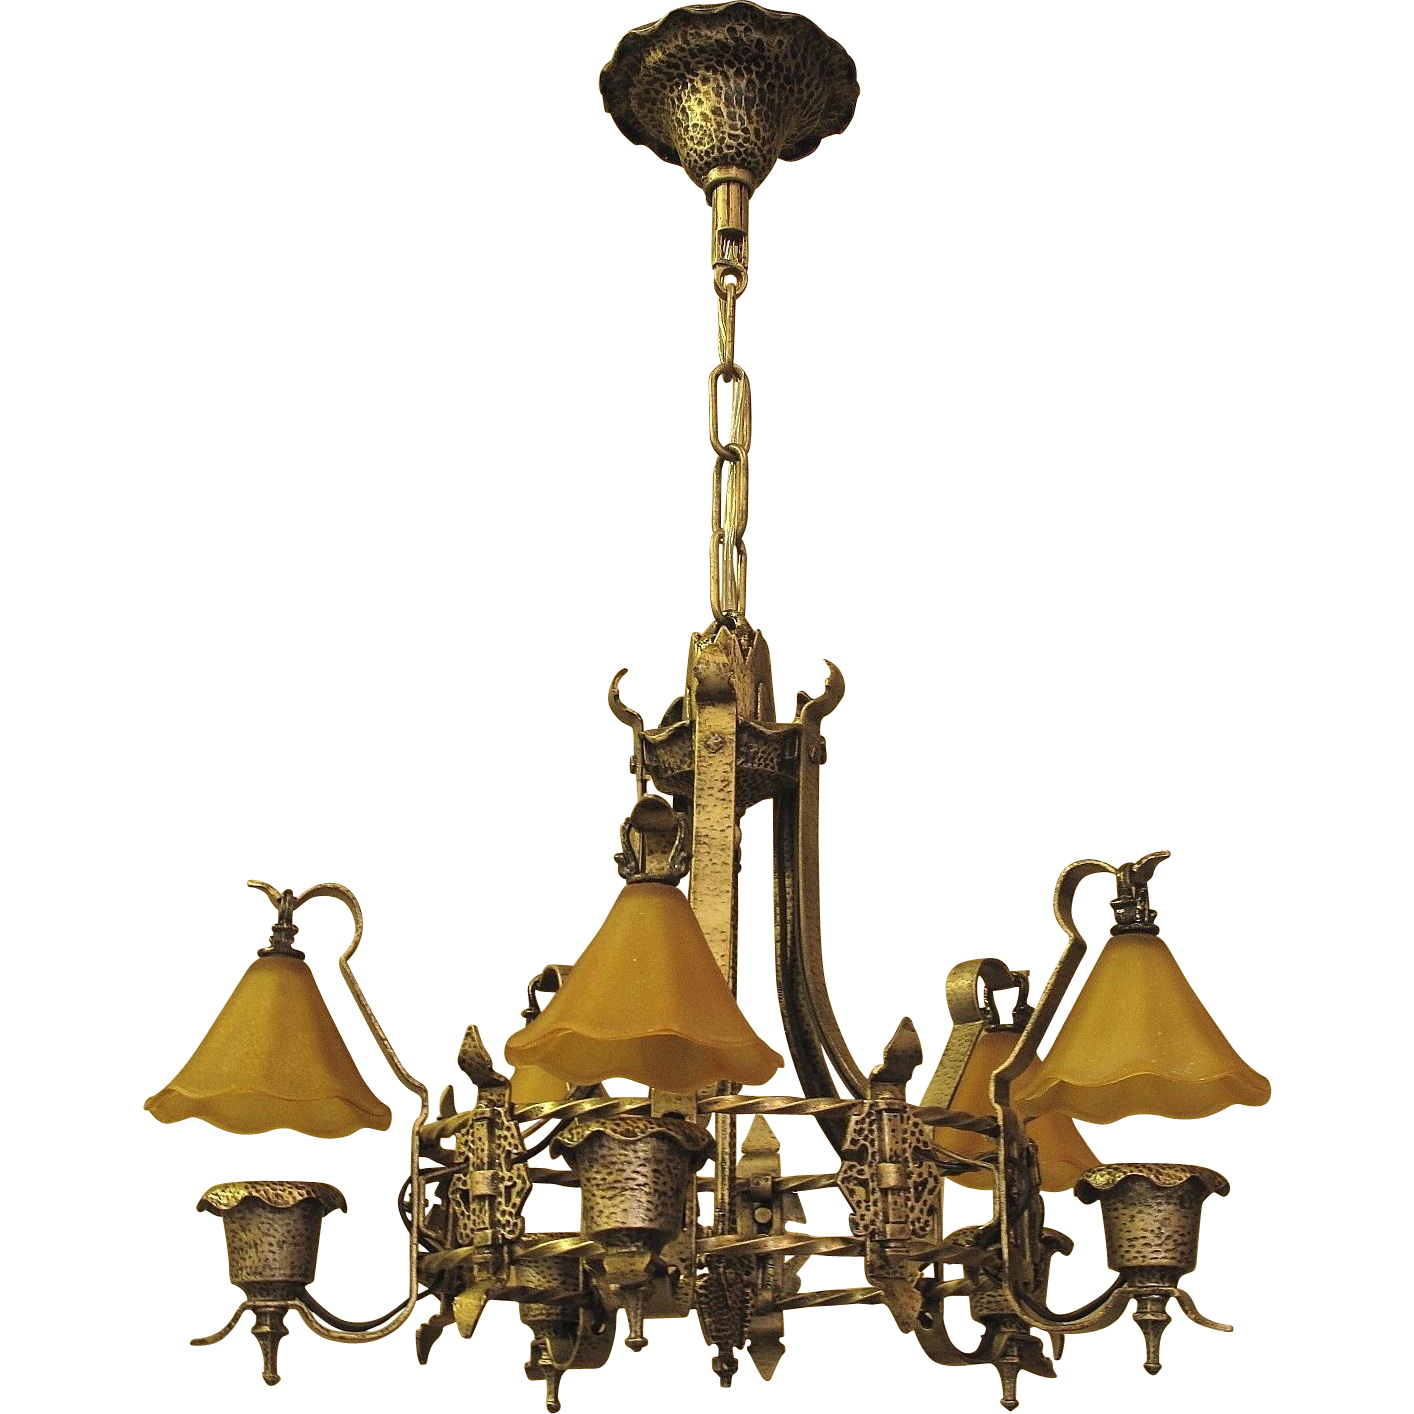 Storybook Style Vintage Ceiling Light Fixture with Original Smoke